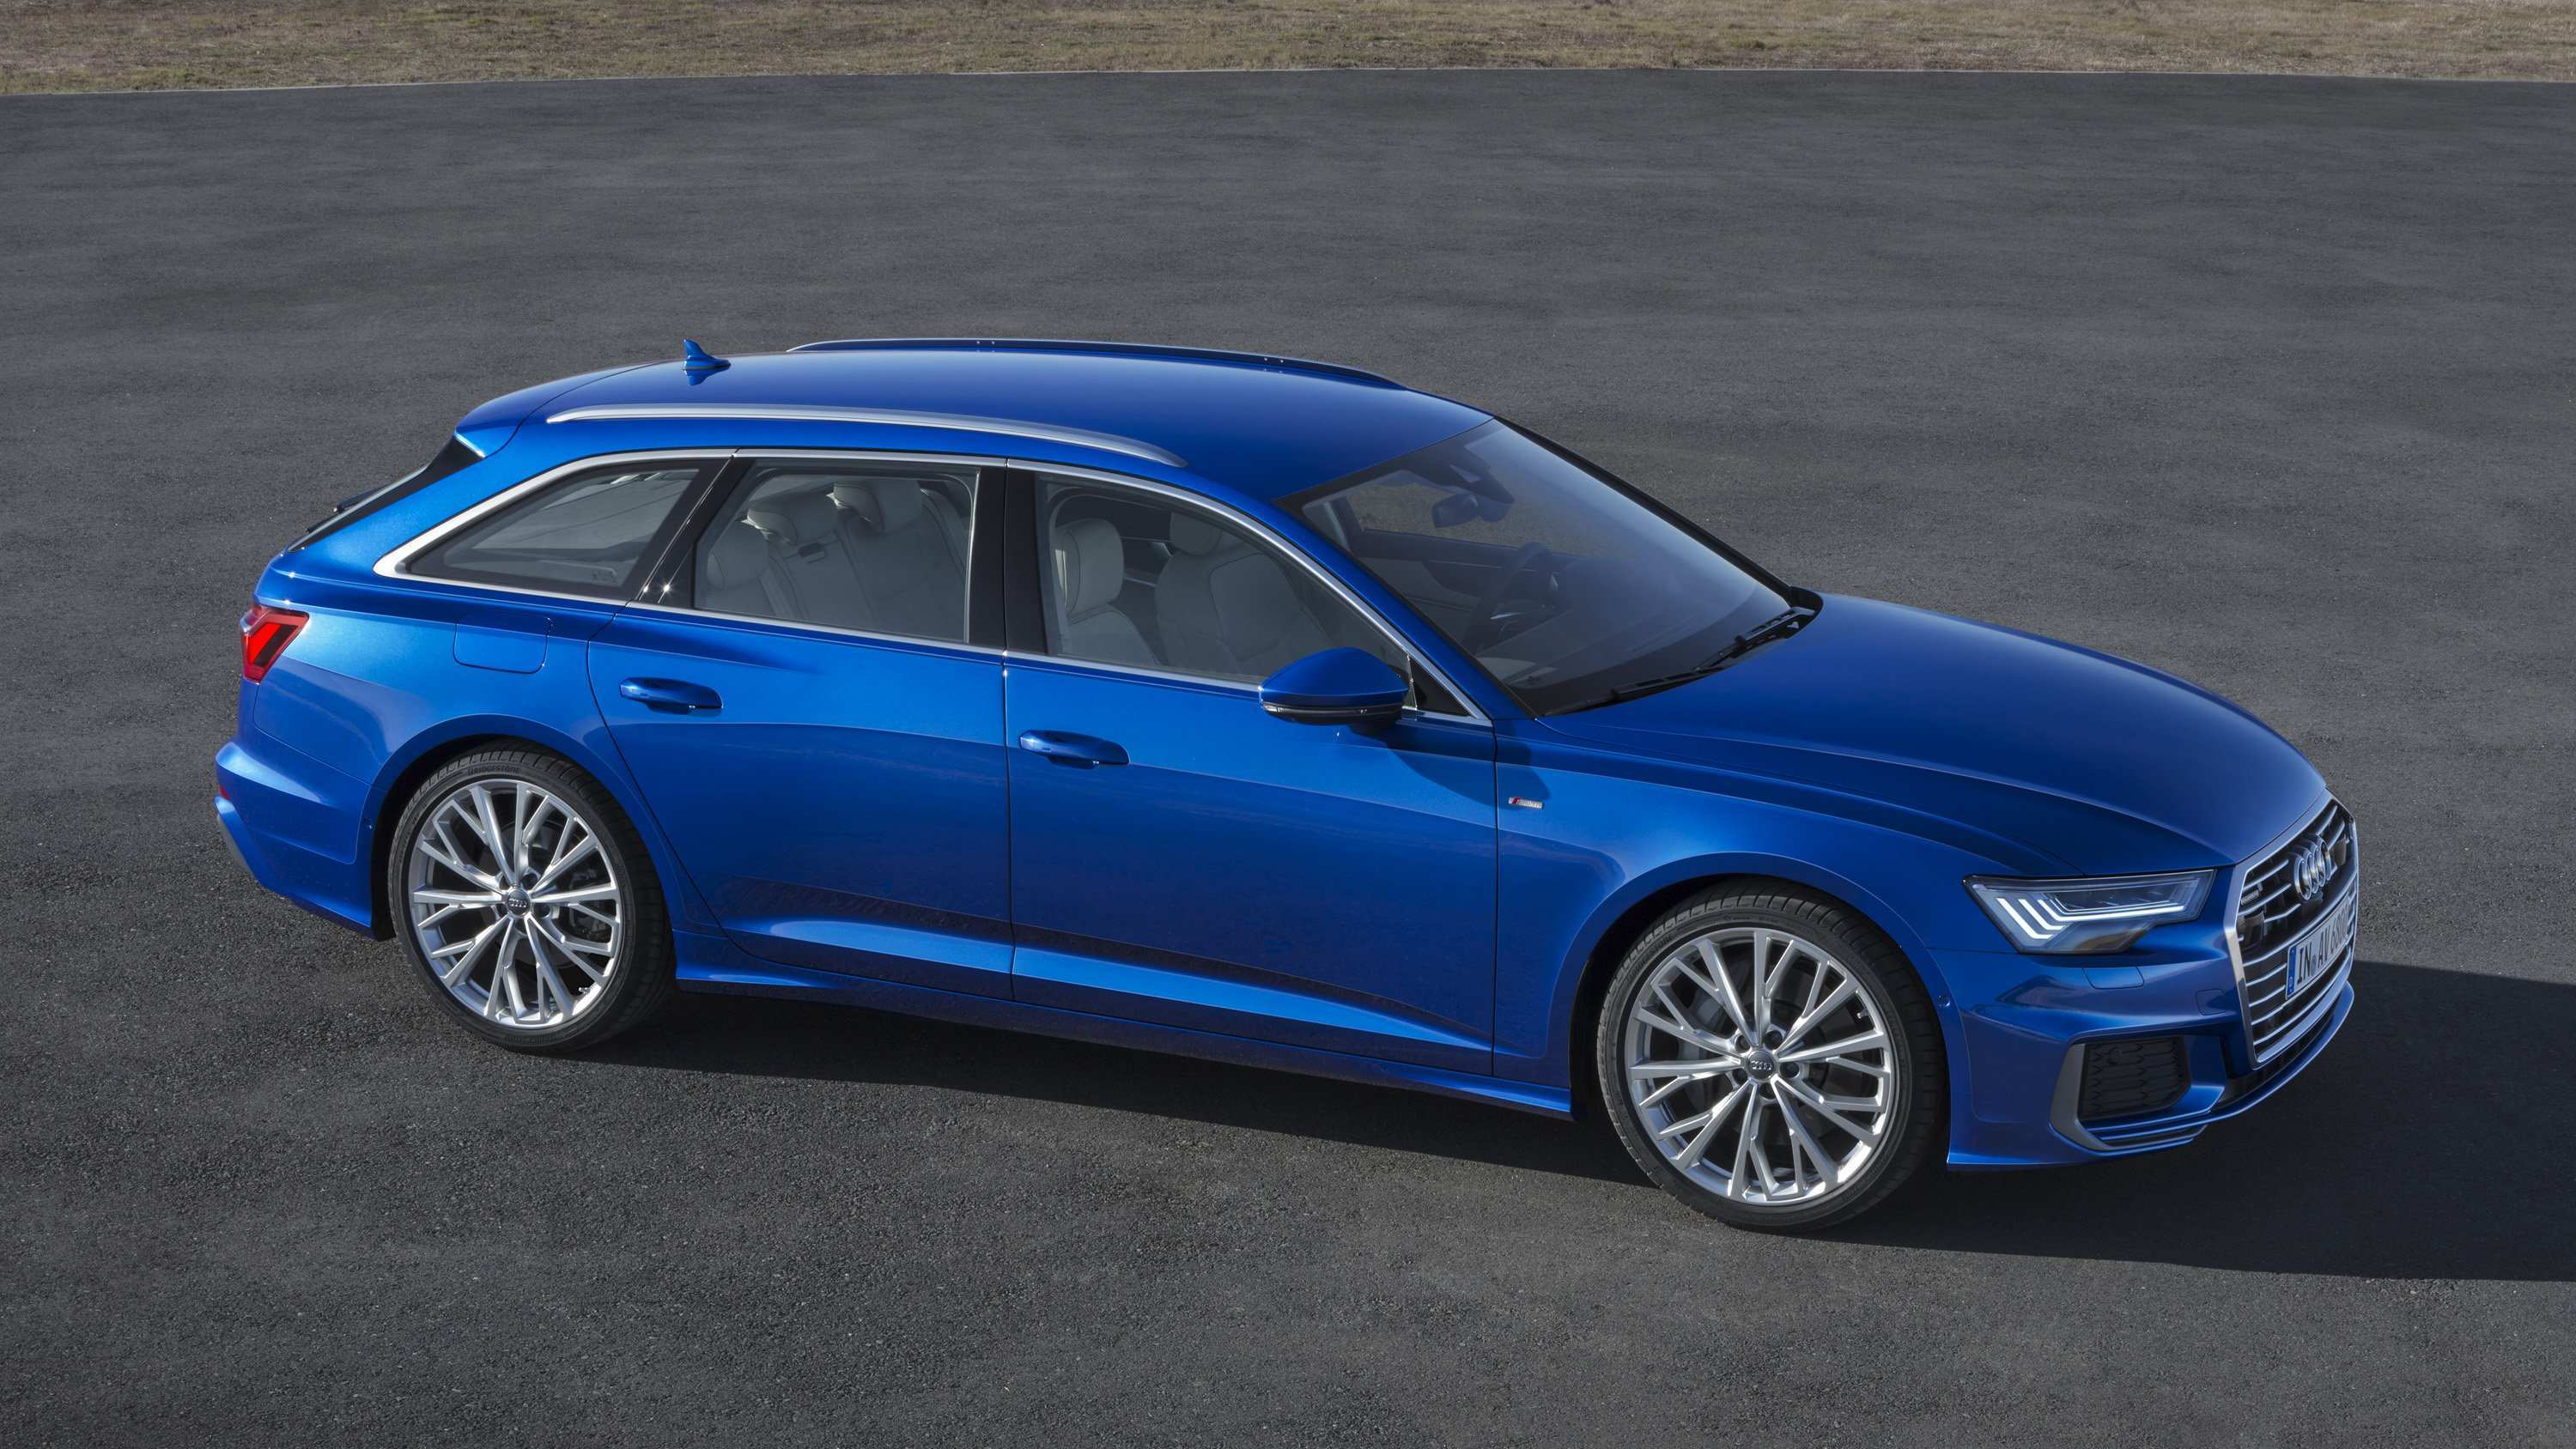 86 Gallery of New Audi A6 S Line 2019 Picture Release Date And Review Research New by New Audi A6 S Line 2019 Picture Release Date And Review